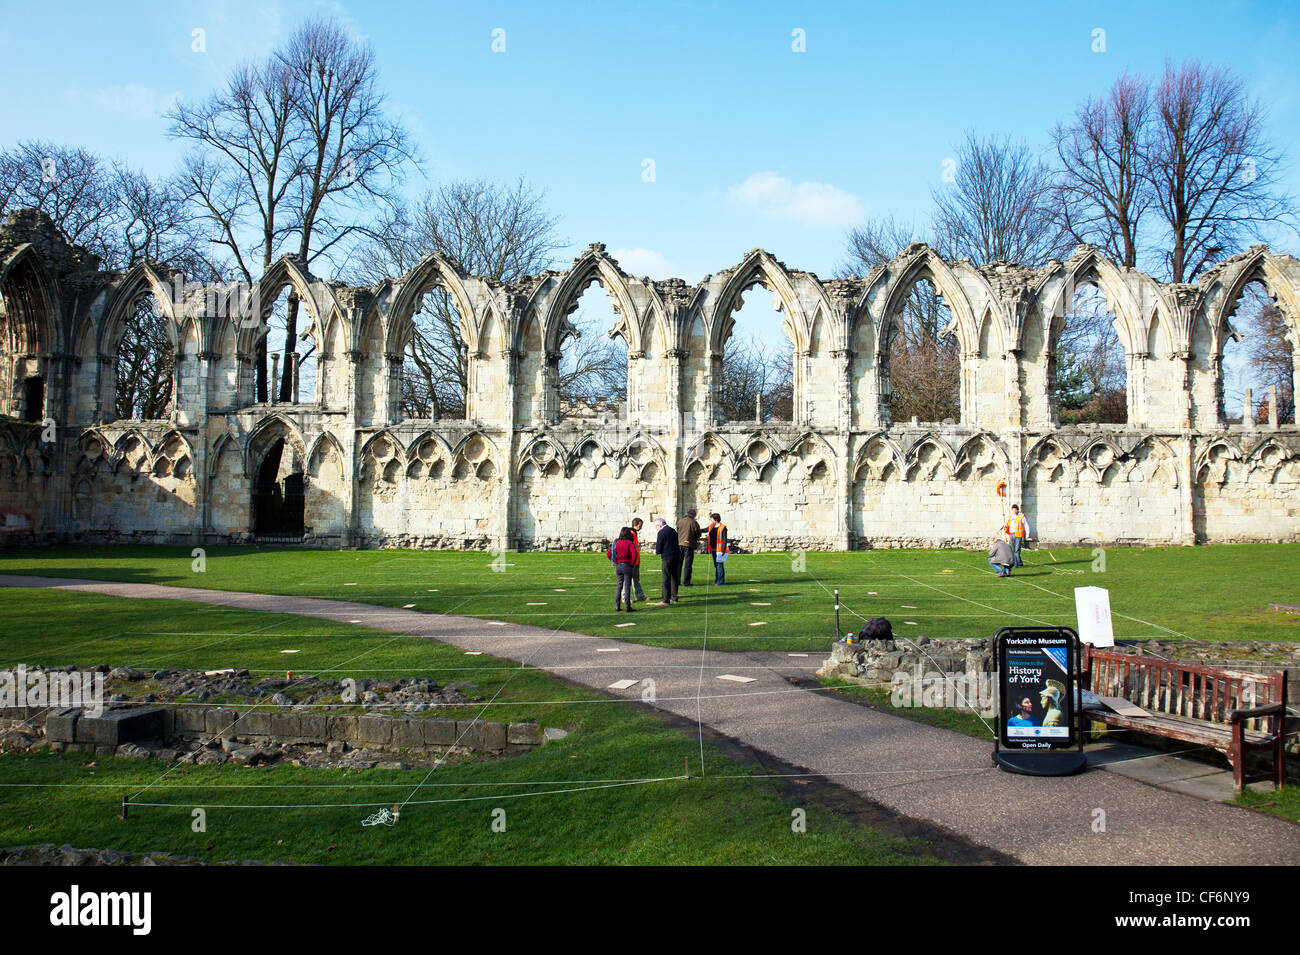 York City, Yorkshire, England old abbey remains of St Mary in York set up as archaeological dig site squares marked - Stock Image